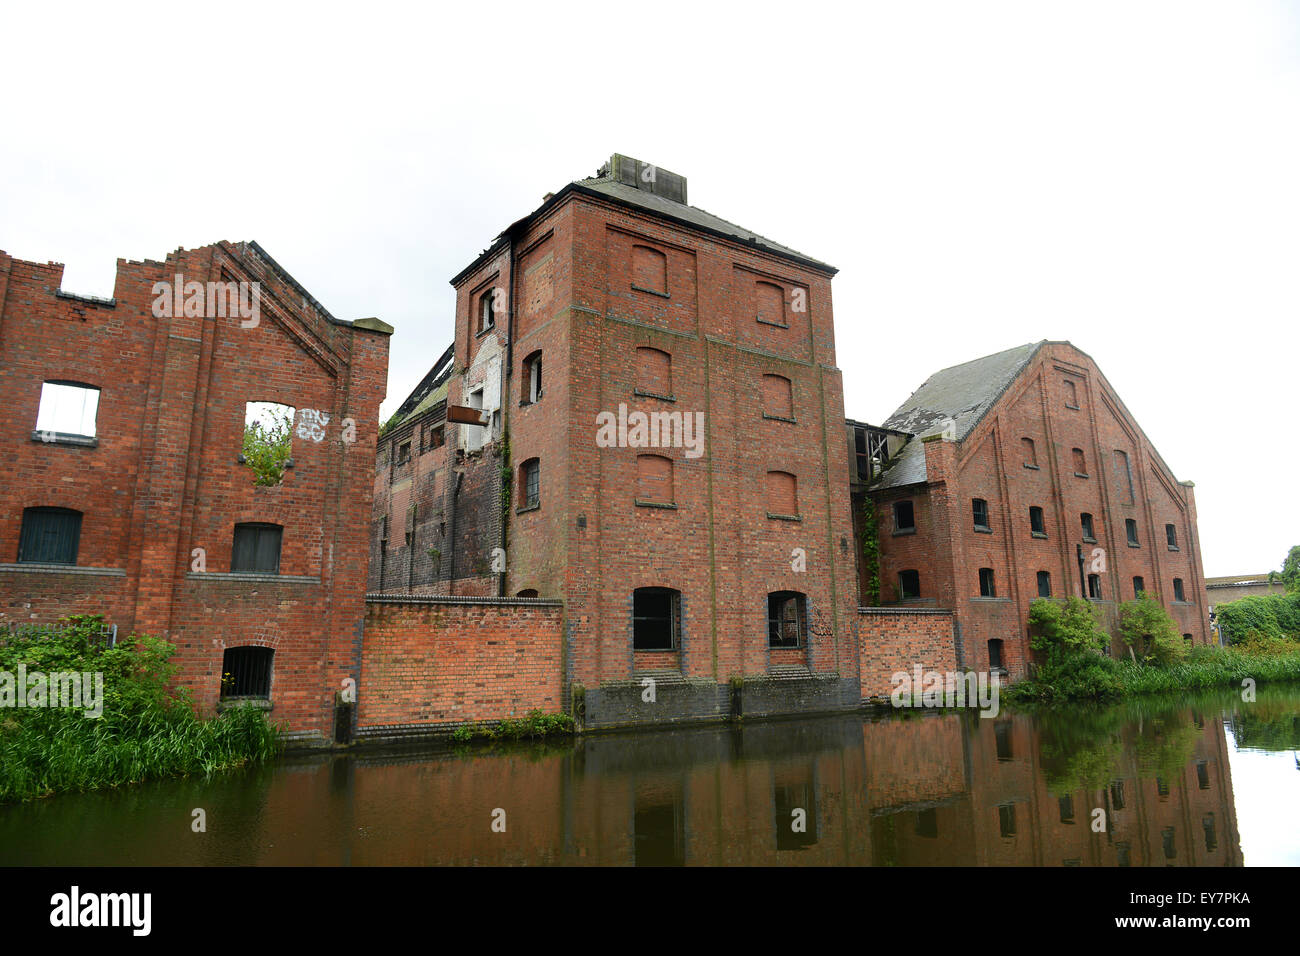 Langley Maltings Grade II-listed Victorian structure and Titford Canal in Oldbury West Midlands Uk - Stock Image